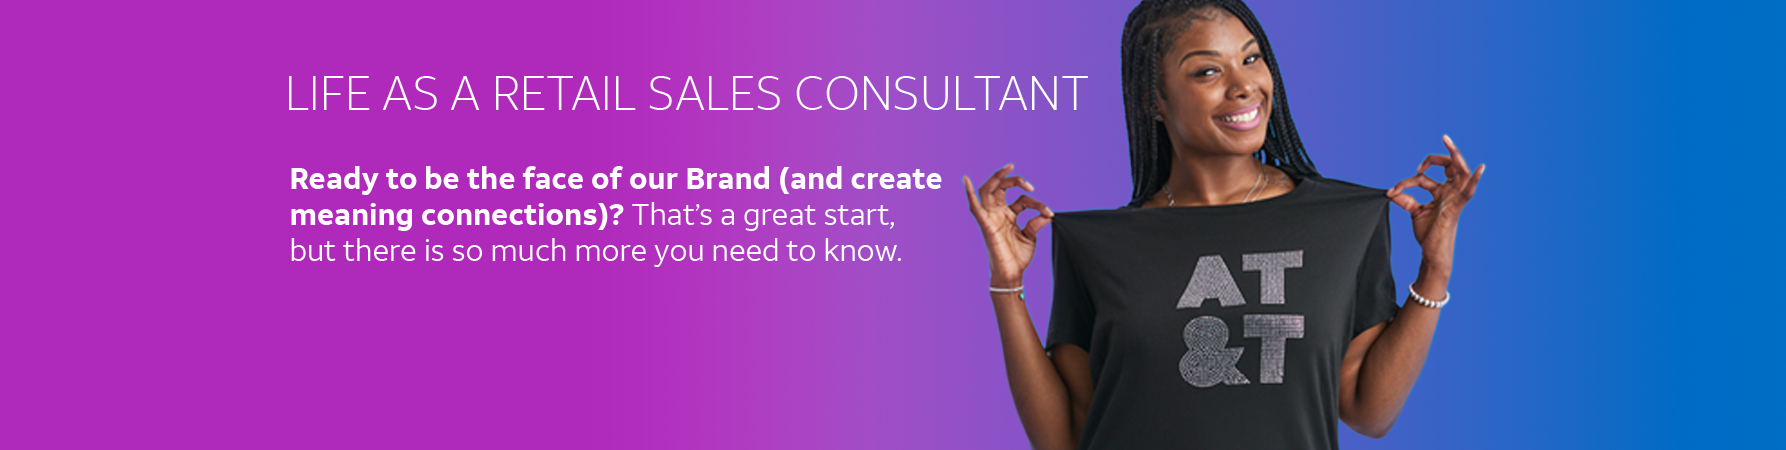 Learn more life as a retail consultant